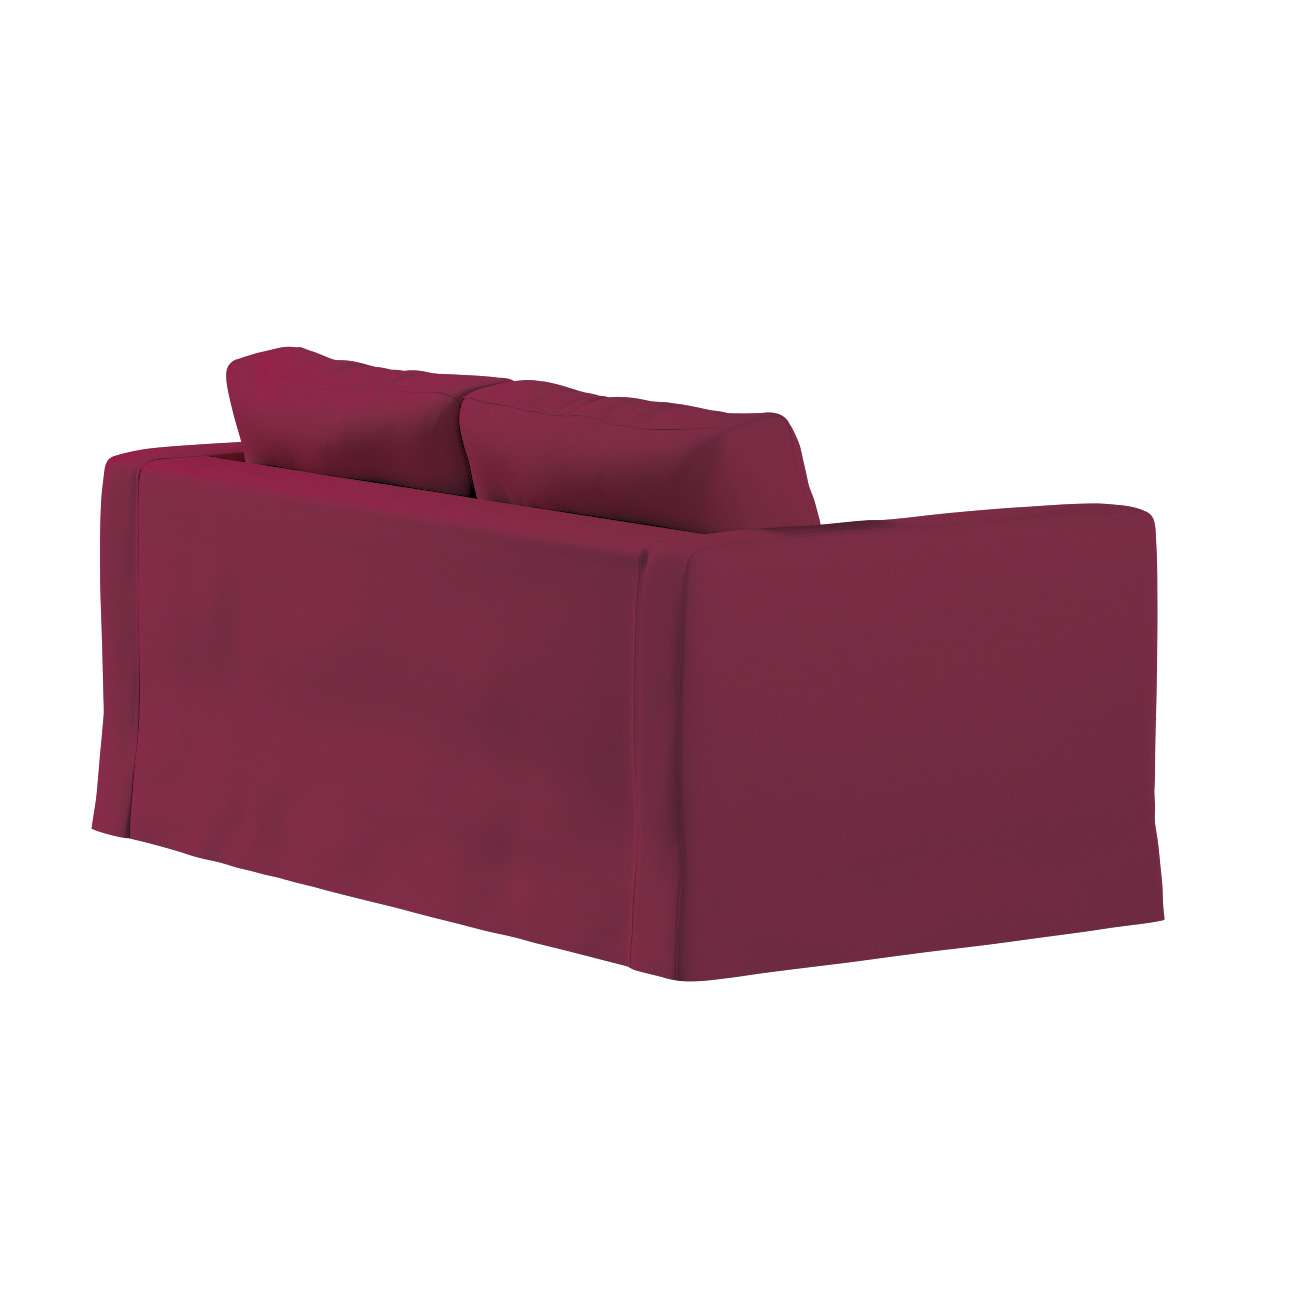 Floor length Karlstad 2-seater sofa cover in collection Panama Cotton, fabric: 702-32